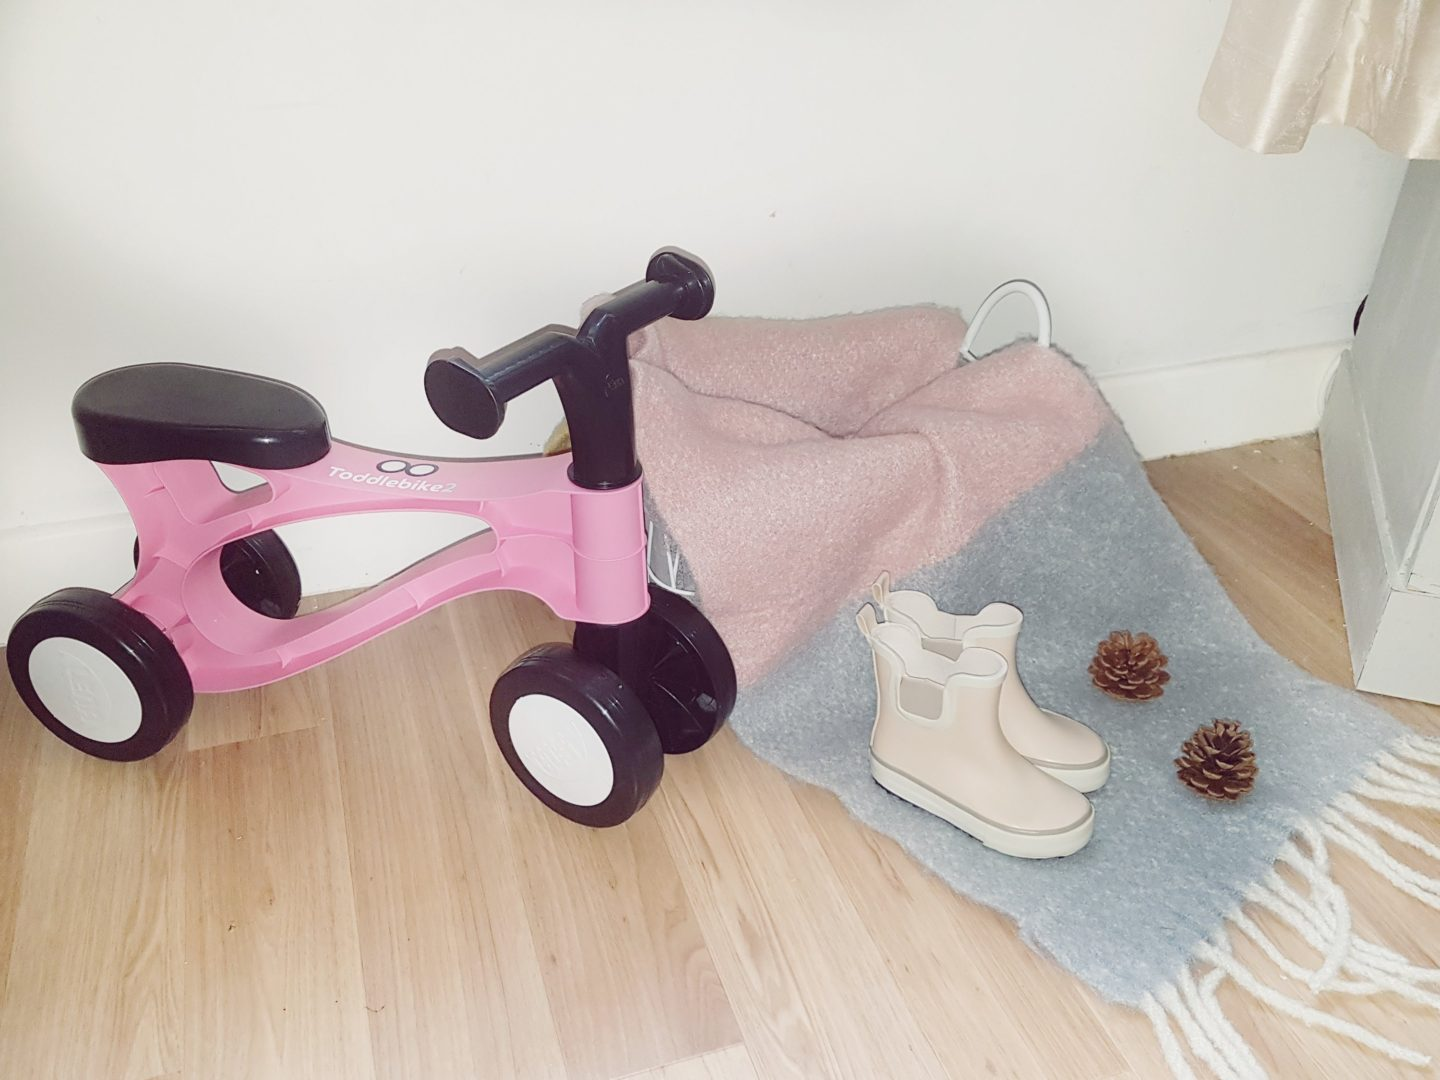 ToddleBike 2 Review & GIVEAWAY!